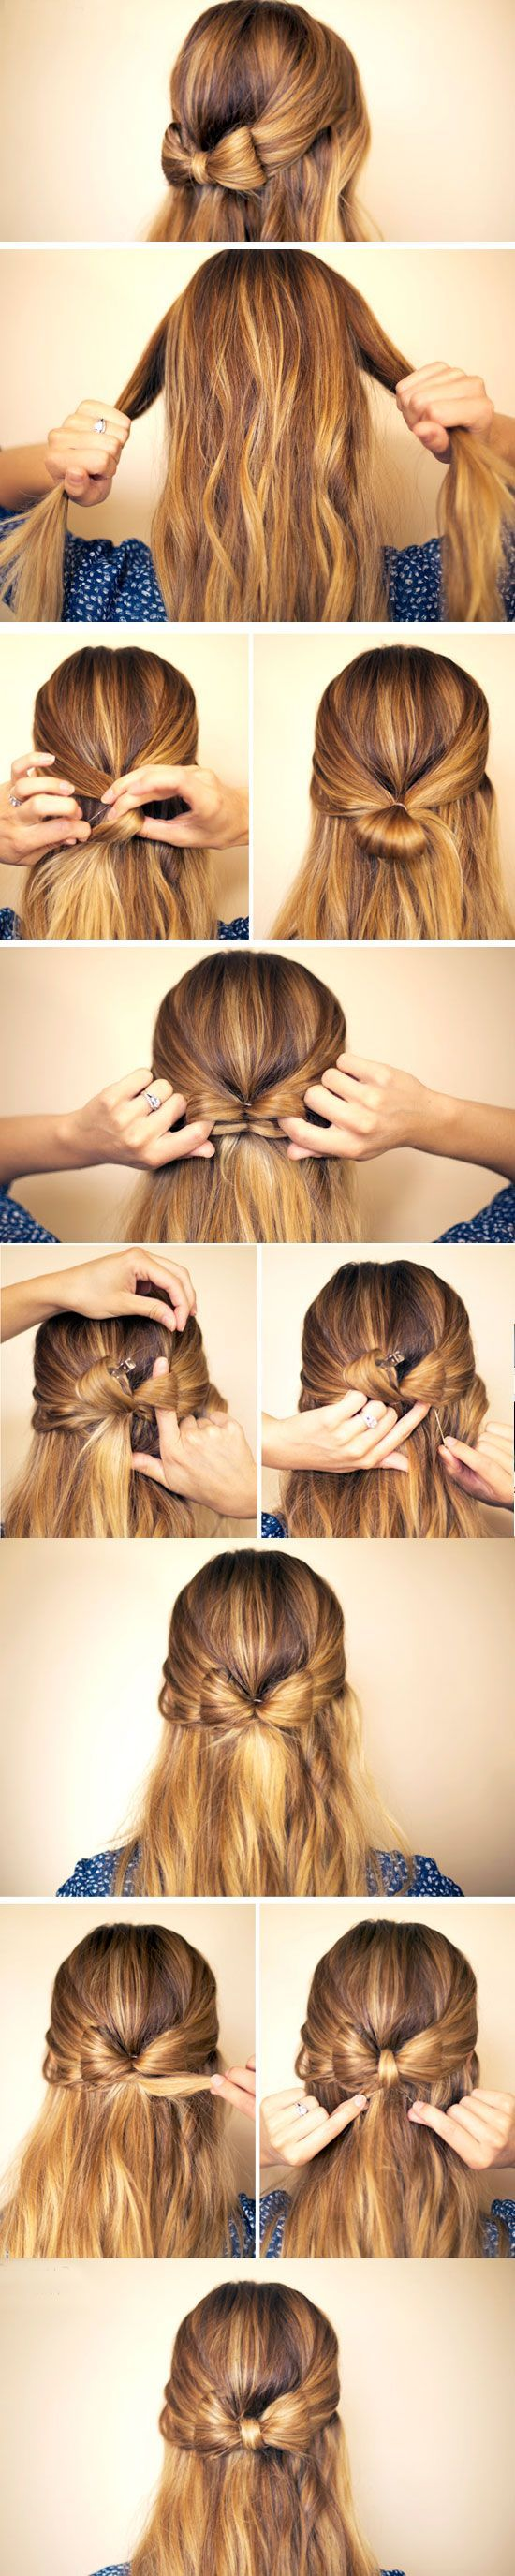 fashionable step by step hairstyle tutorials hair style easy